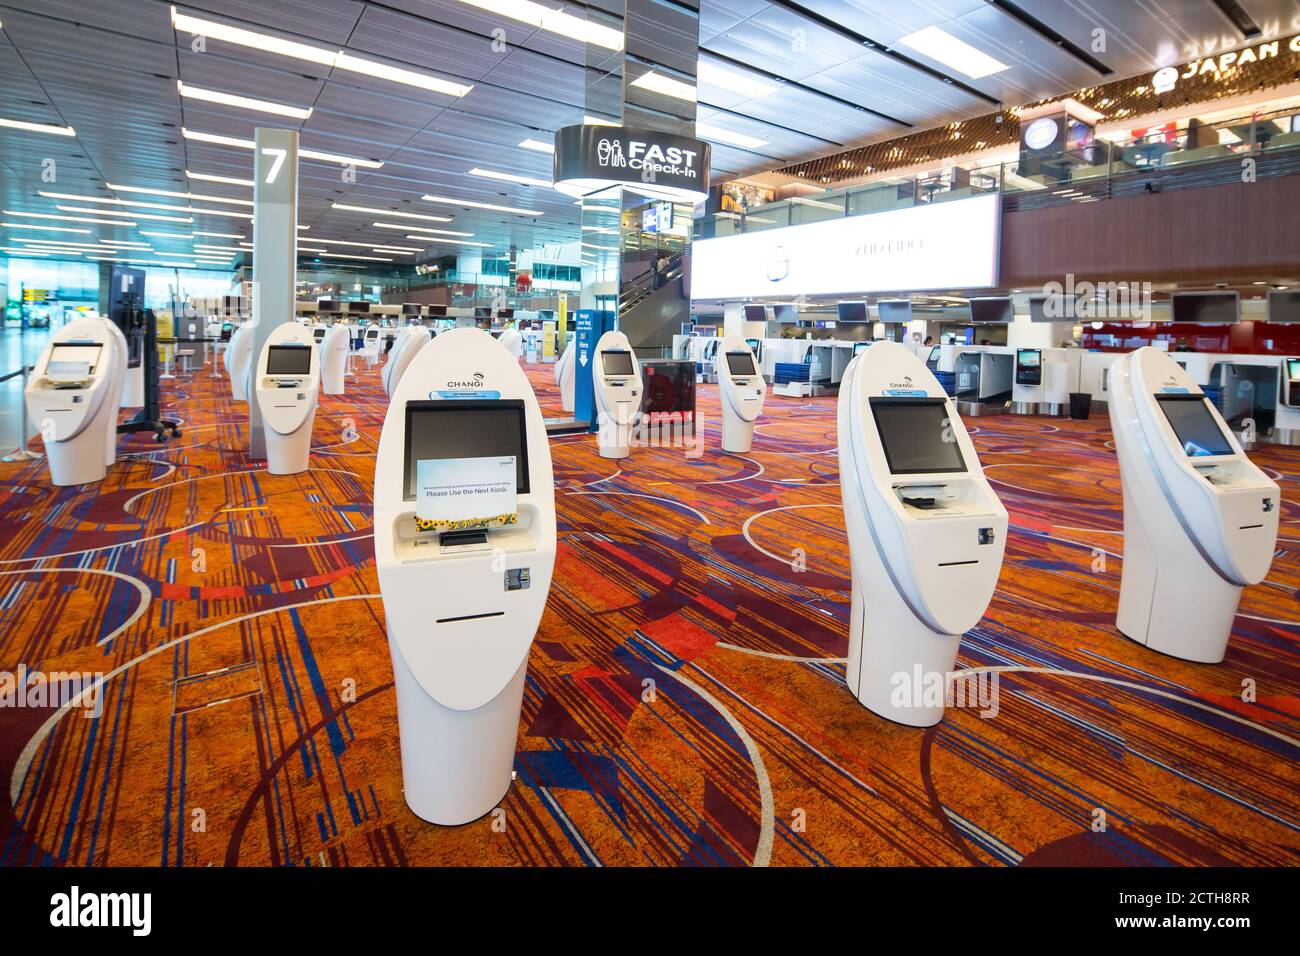 automated-self-check-in-kiosks-are-close